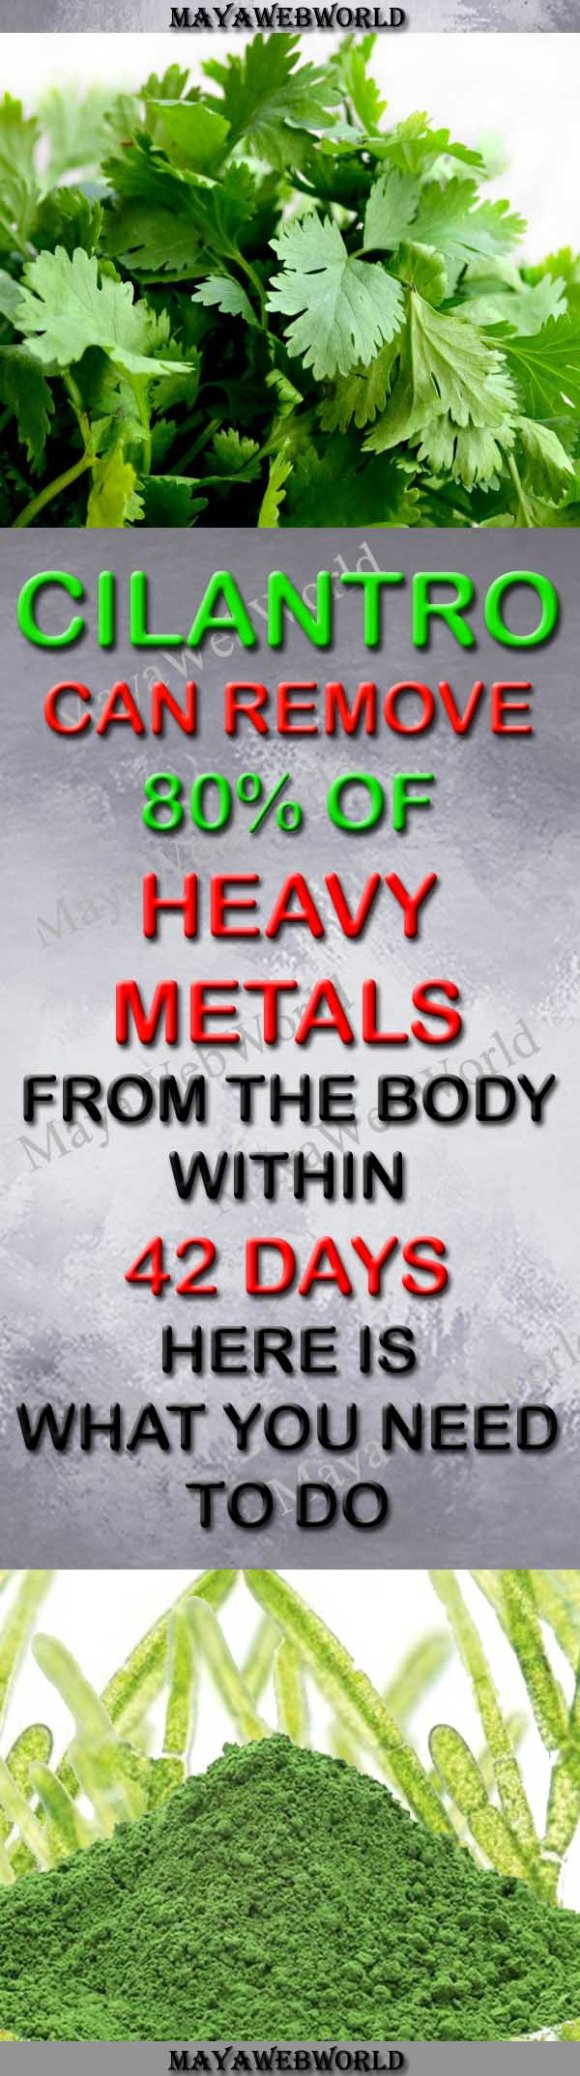 Cilantro-can-Remove-80-of-Heavy-Metals-from-the-Body-within-42-Days-–-Here-is-What-You-Need-to-Do-MayaWebWorld